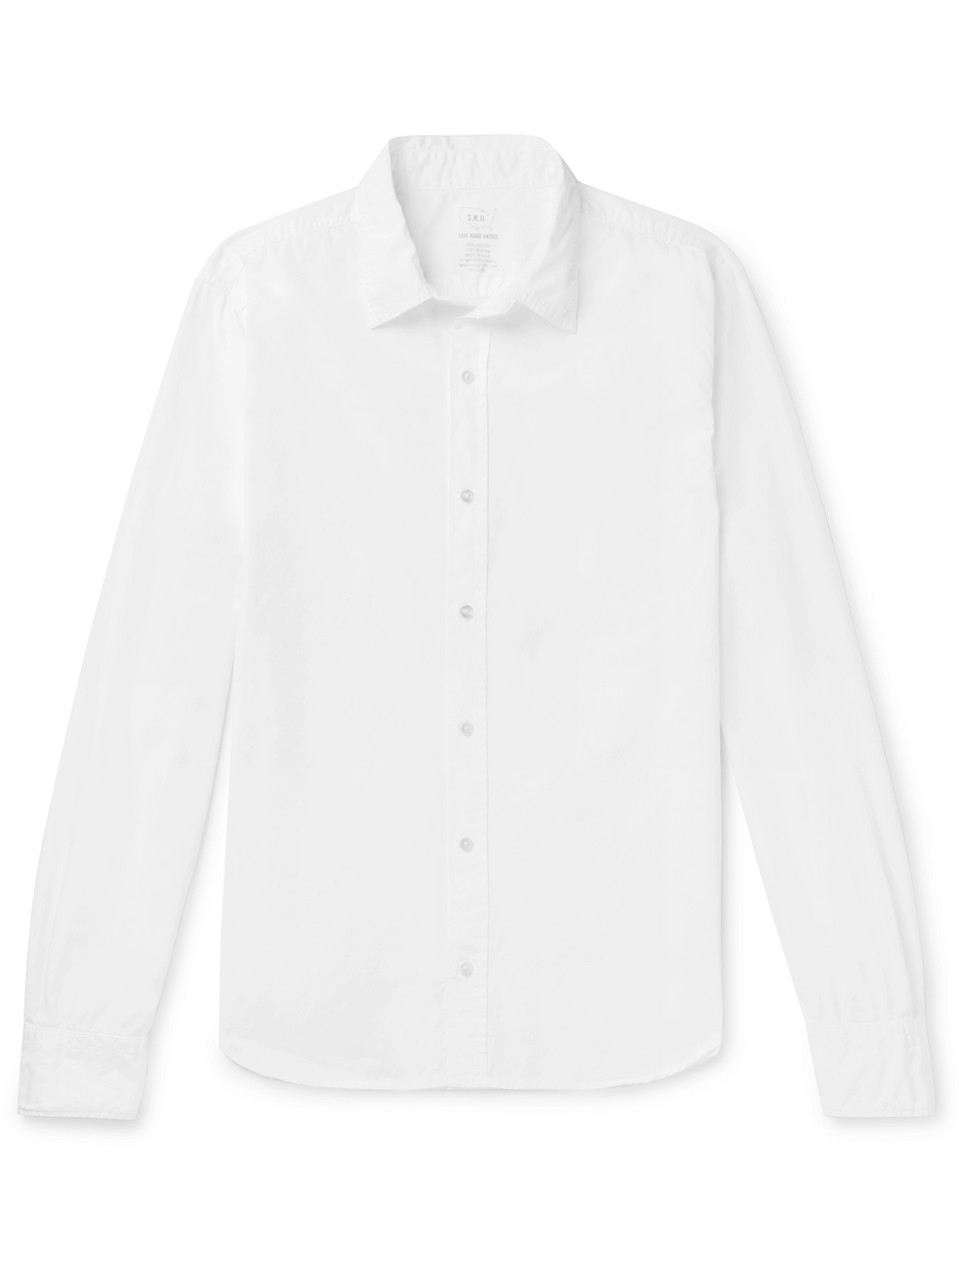 Save Khaki United Cotton-Poplin Shirt